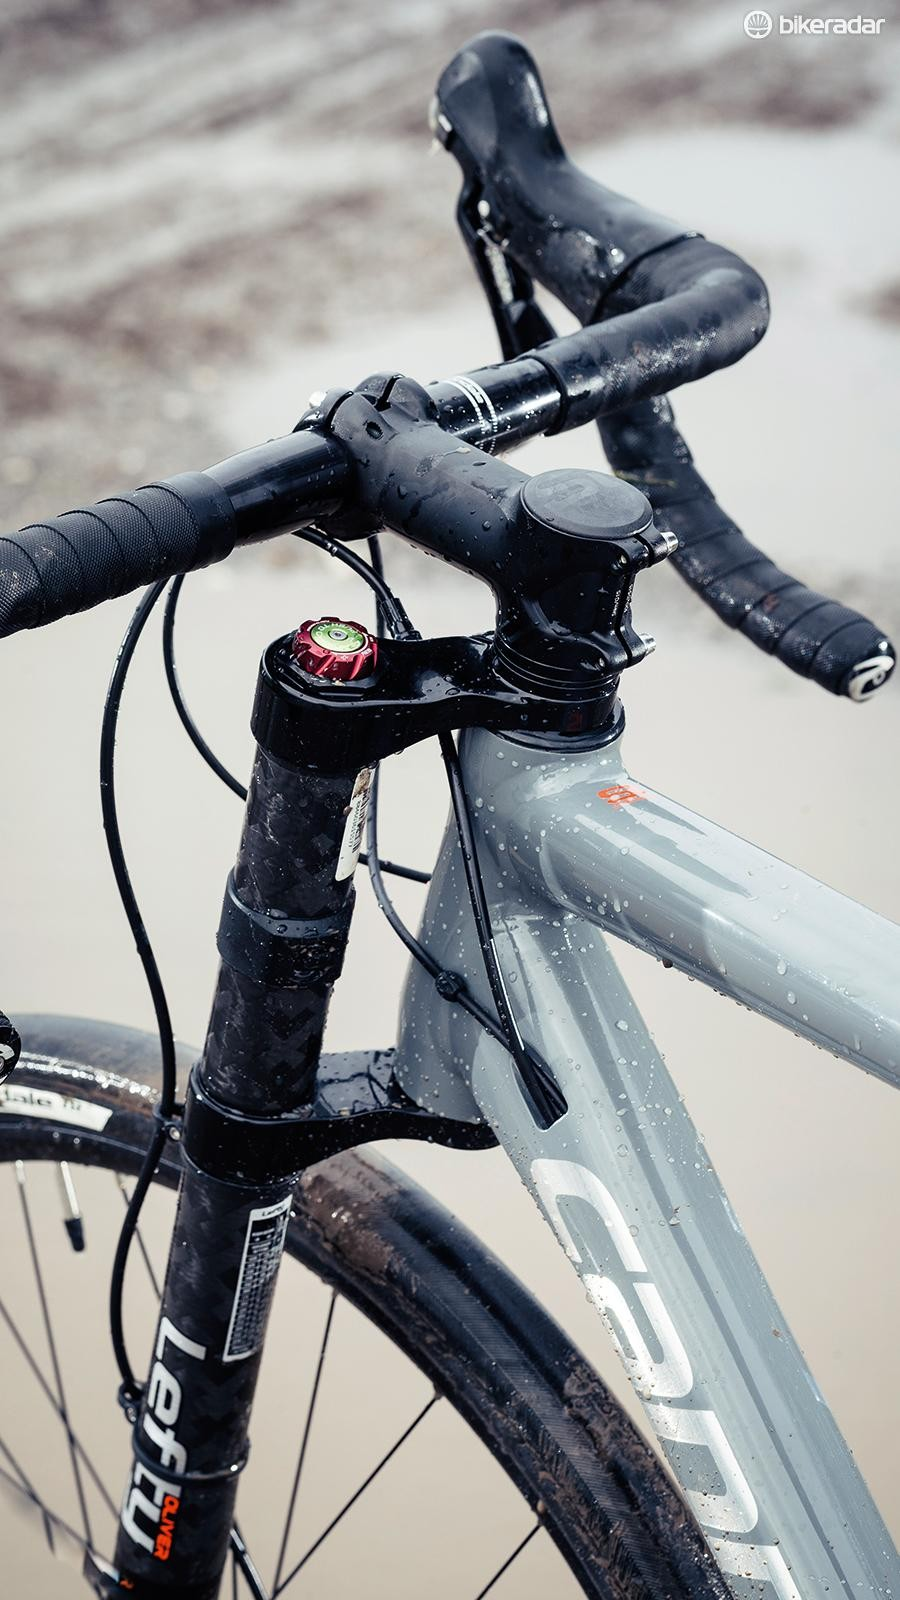 The Slate features Cannondale's new road-specific Lefty Oliver fork